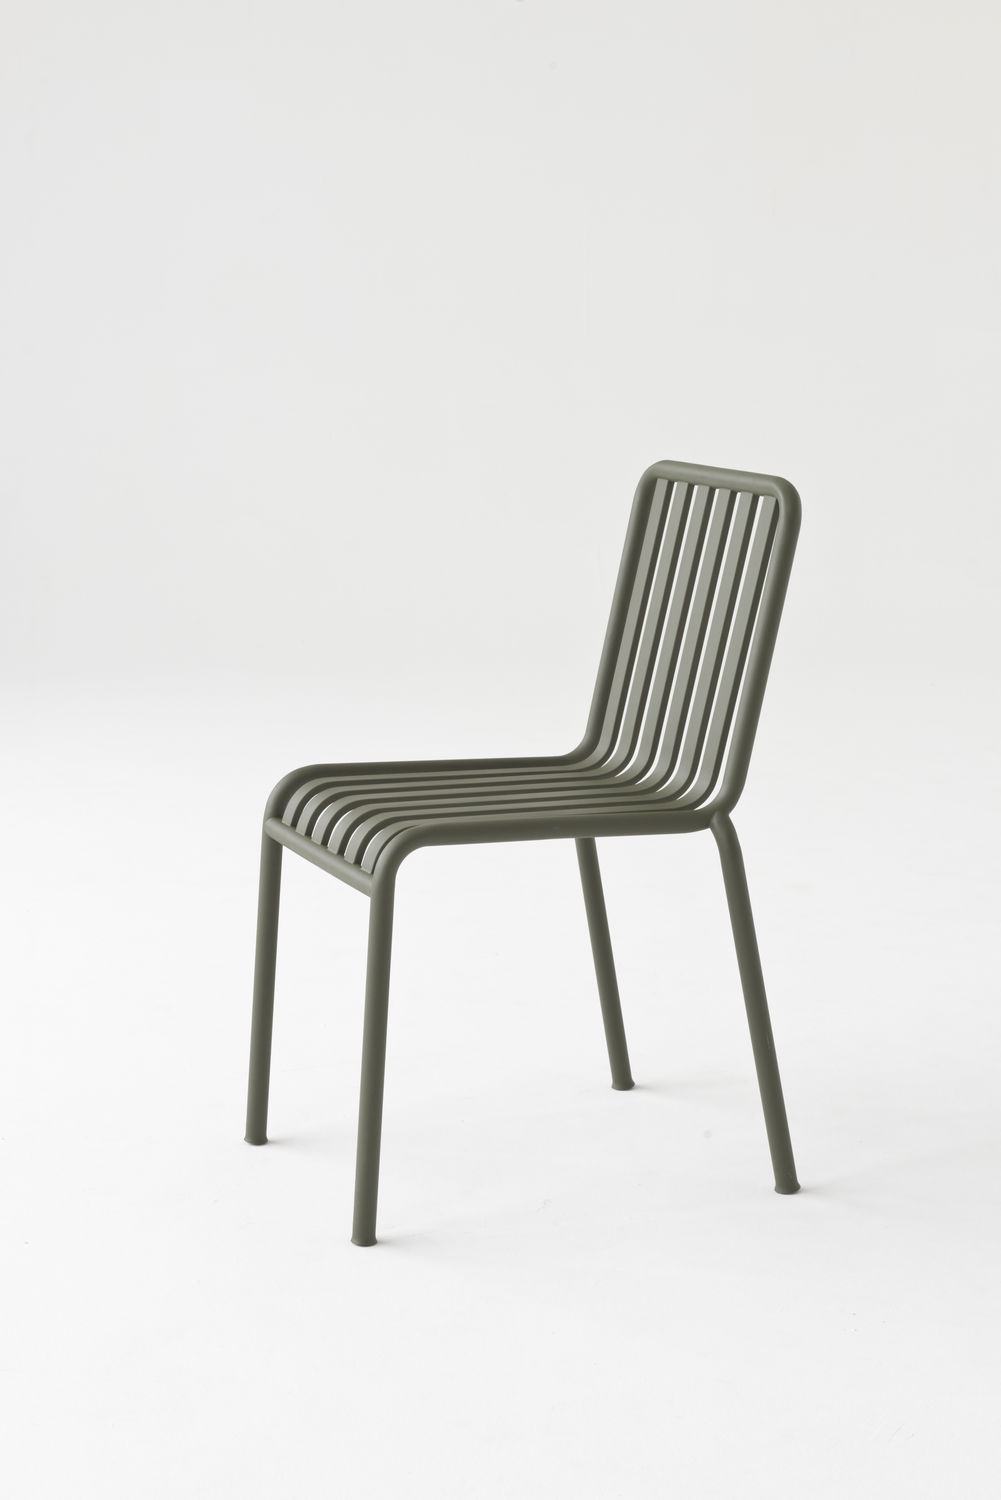 ... Contemporary Dining Chair / Galvanized Steel / Outdoor / Commercial